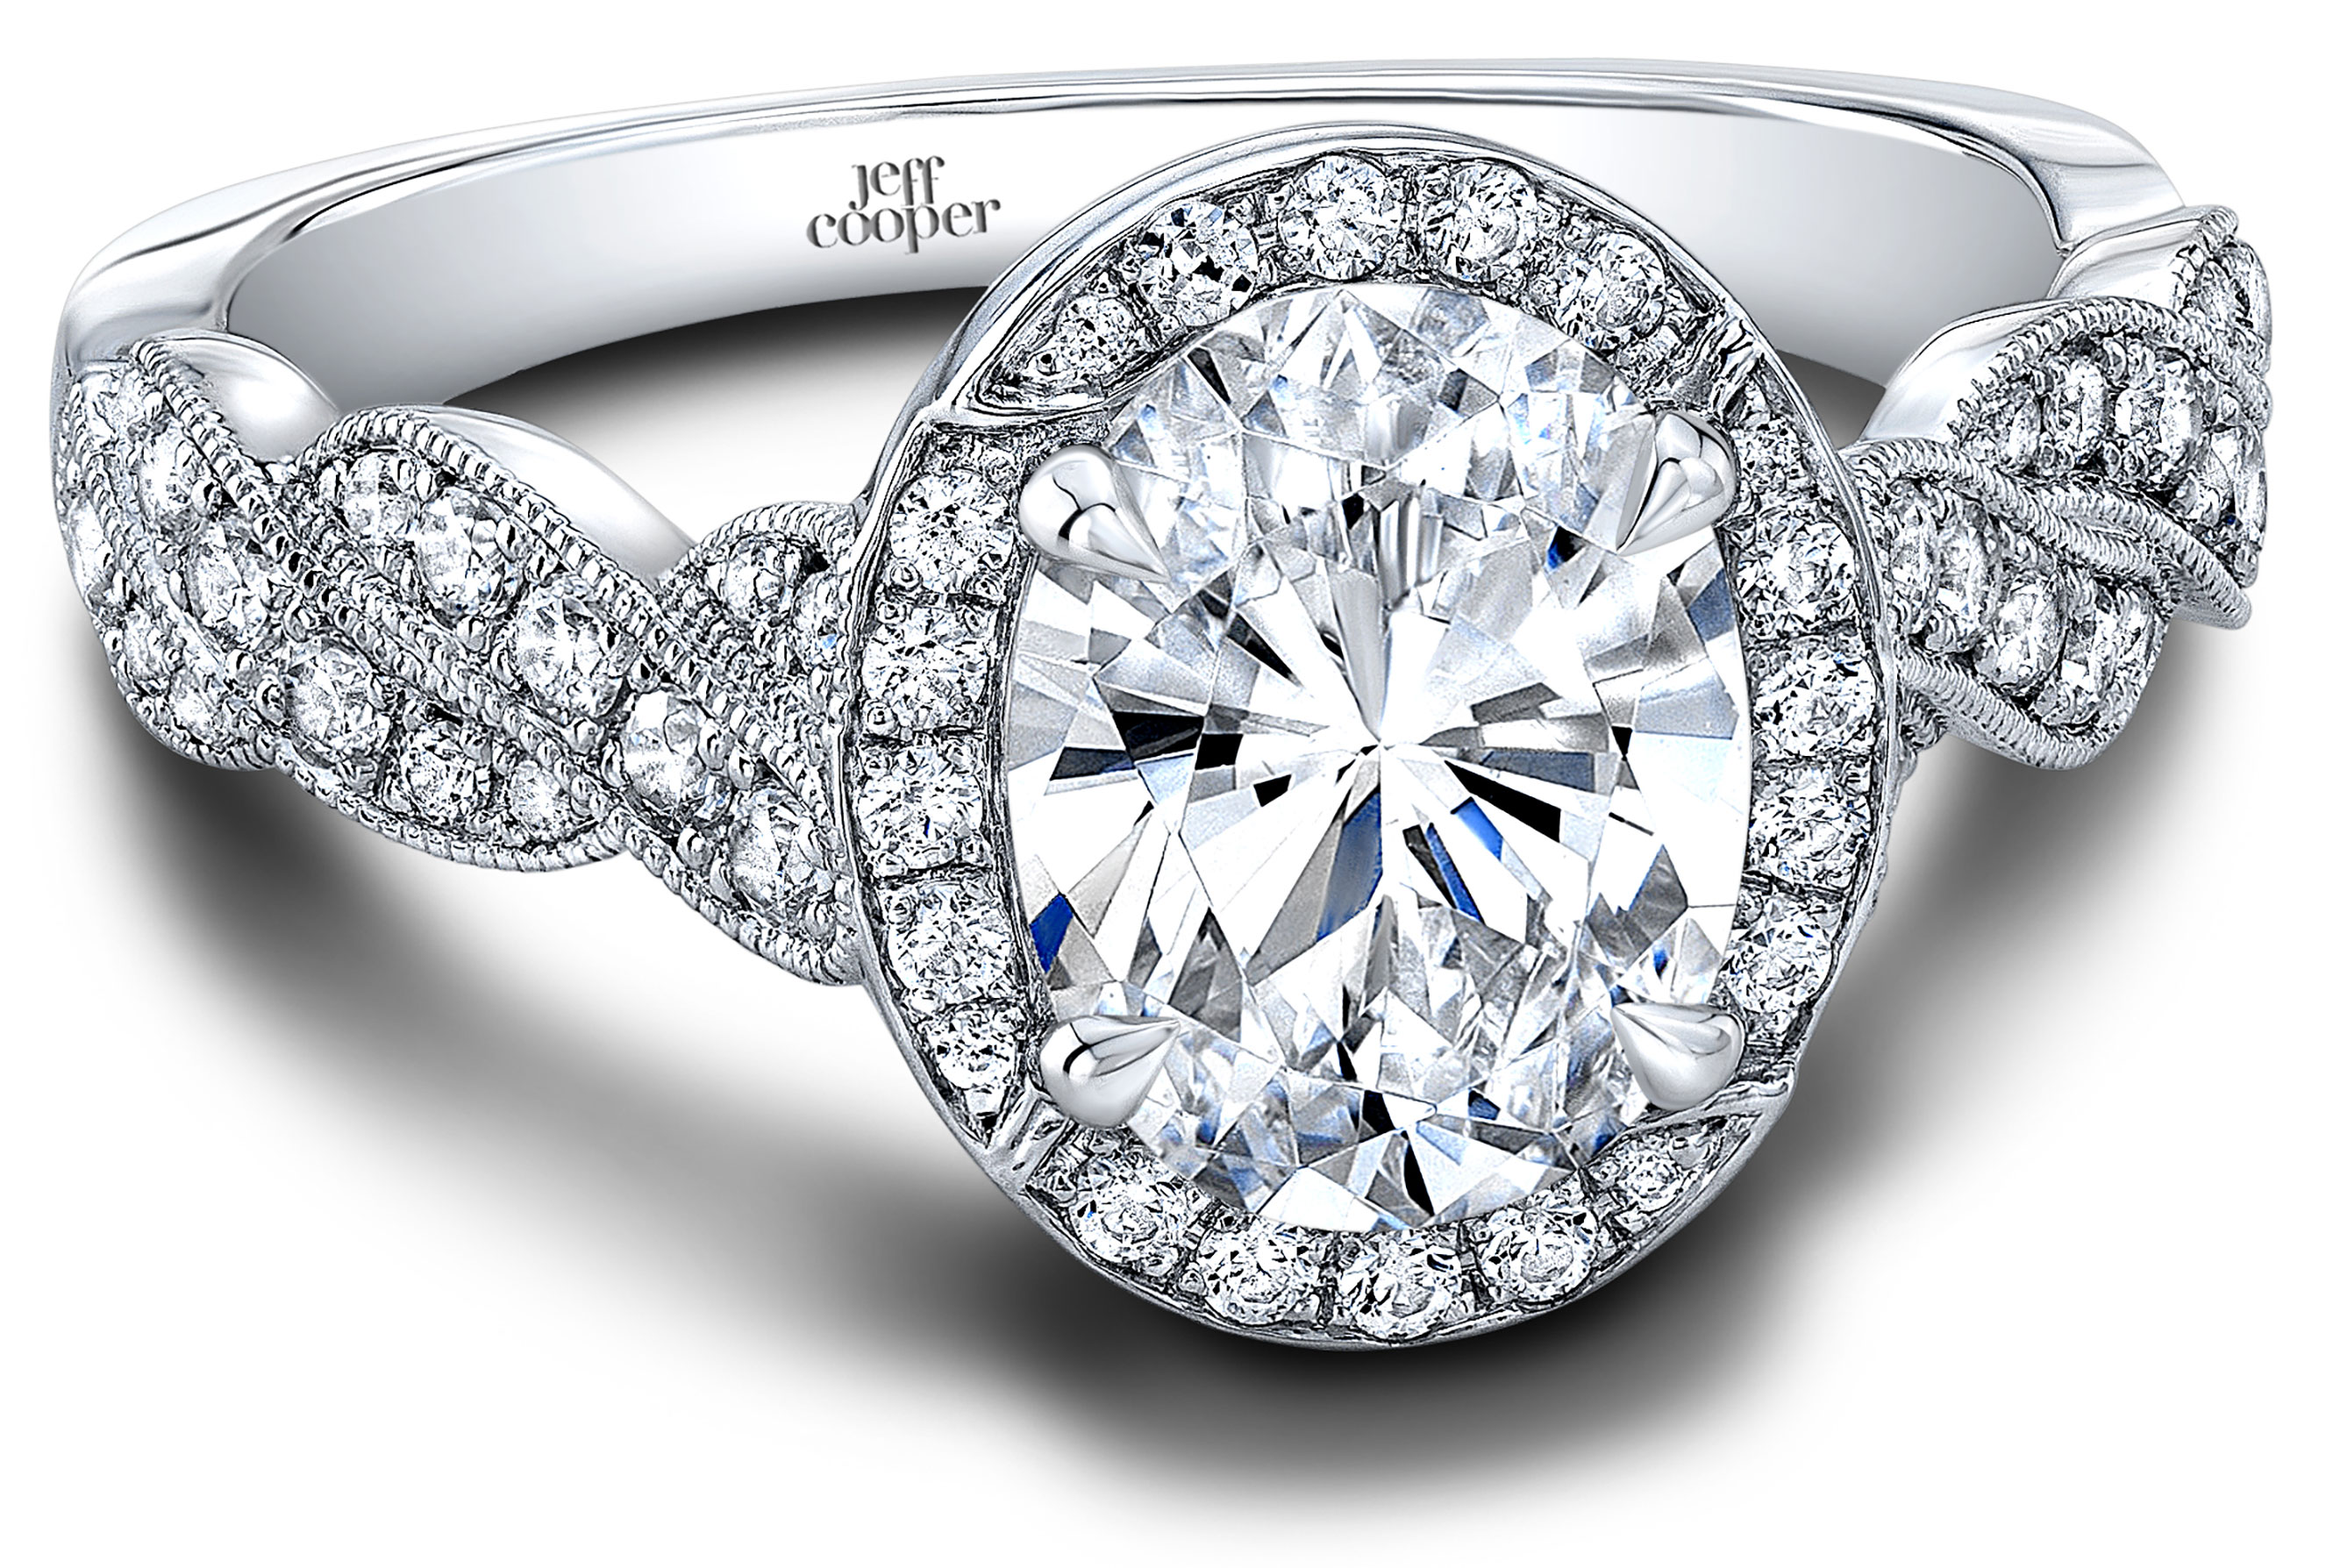 designs diamond the rings ring christine setting vintage angle engagement marguerite product ss design of copy lotus